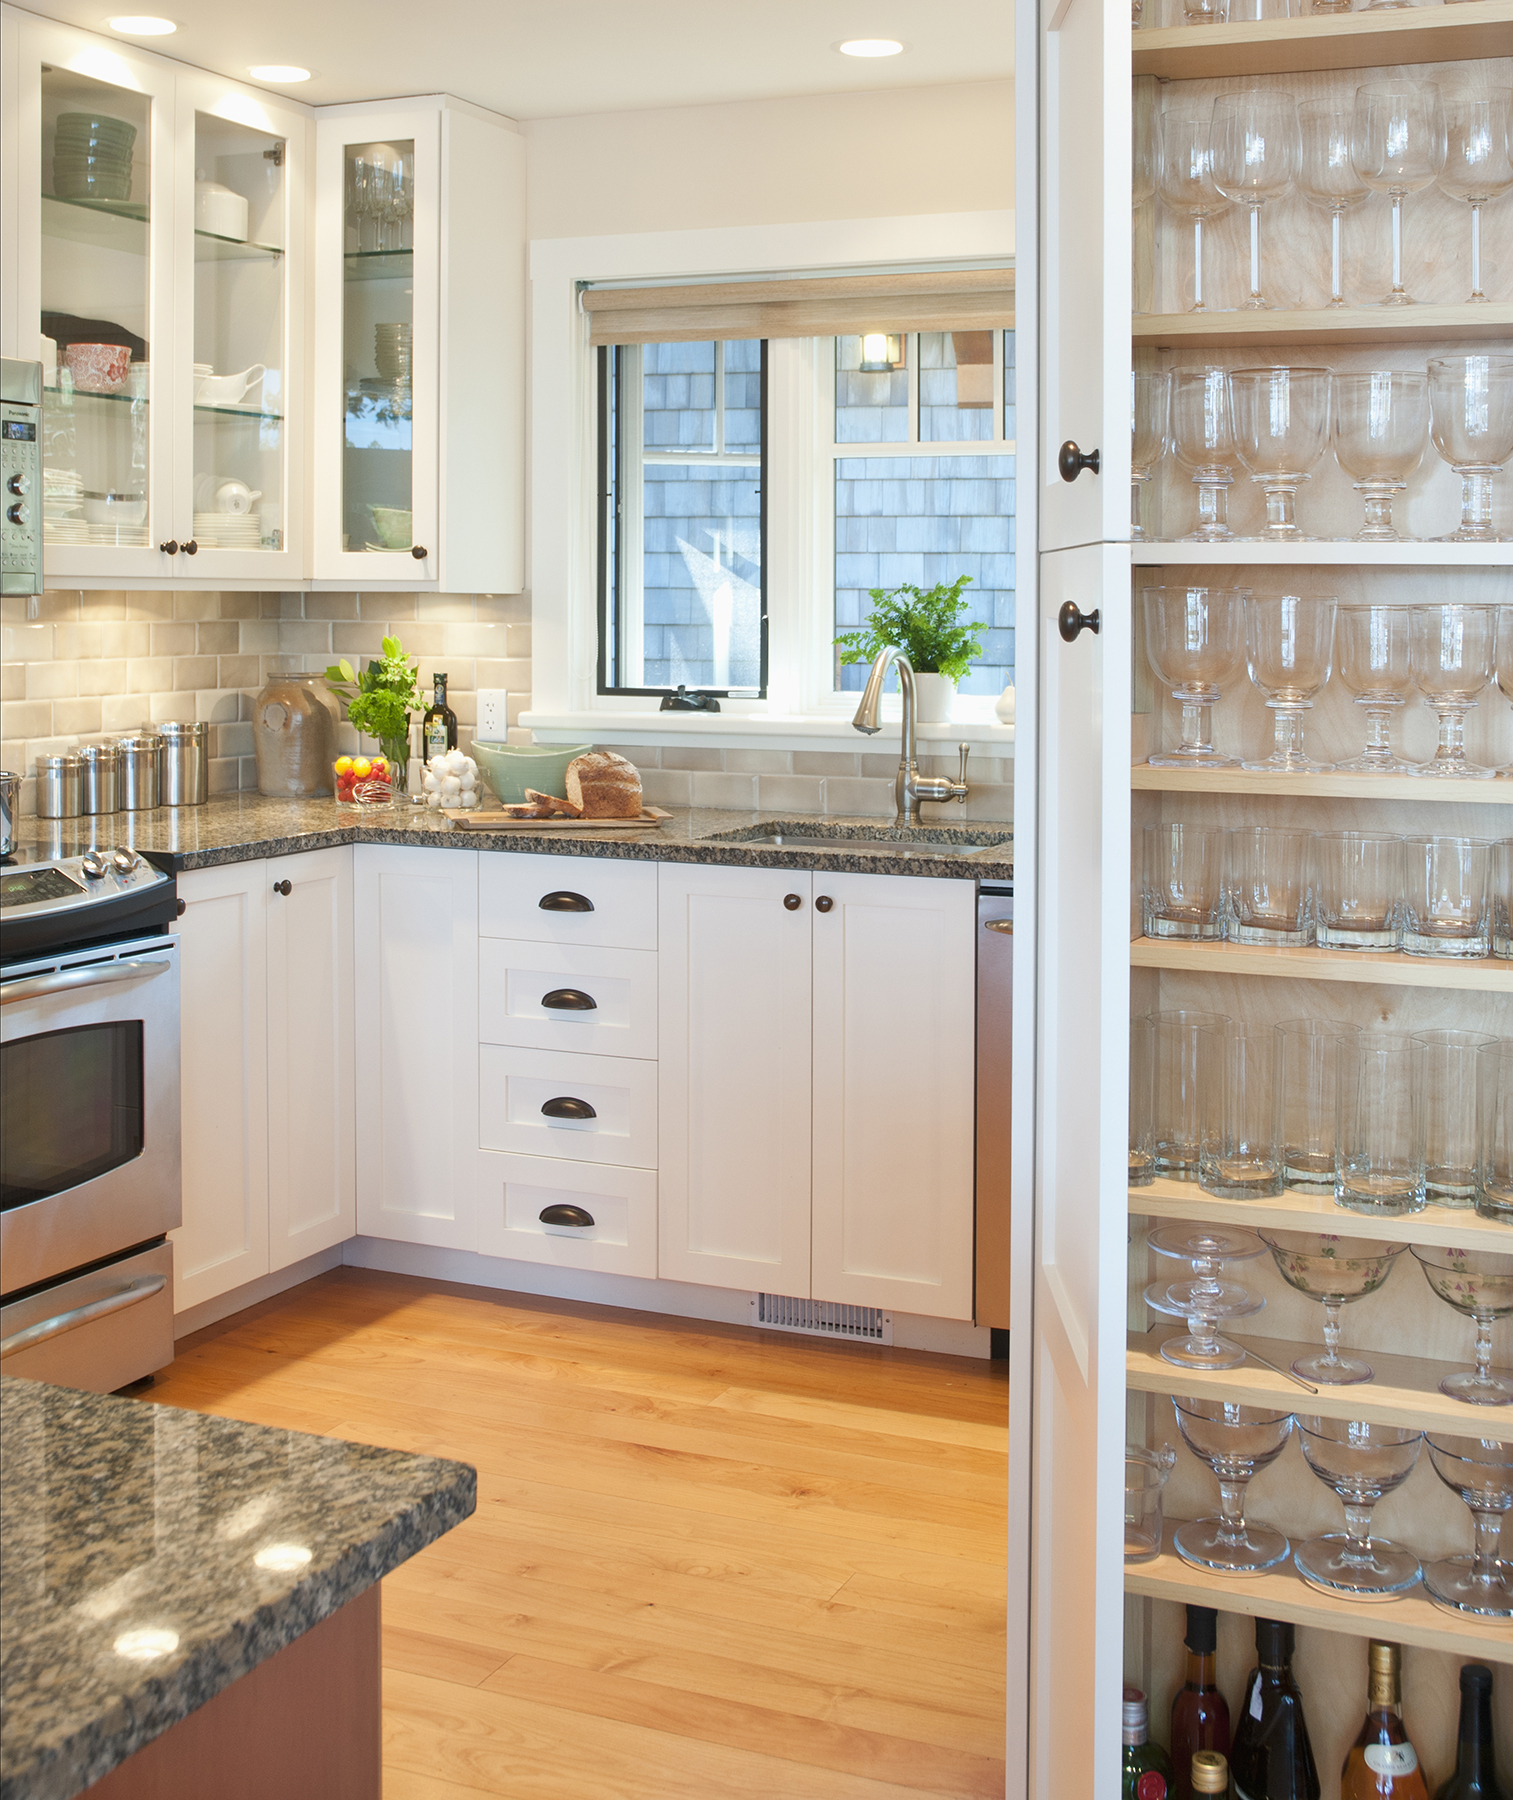 Kitchen with white drawers and wood floor